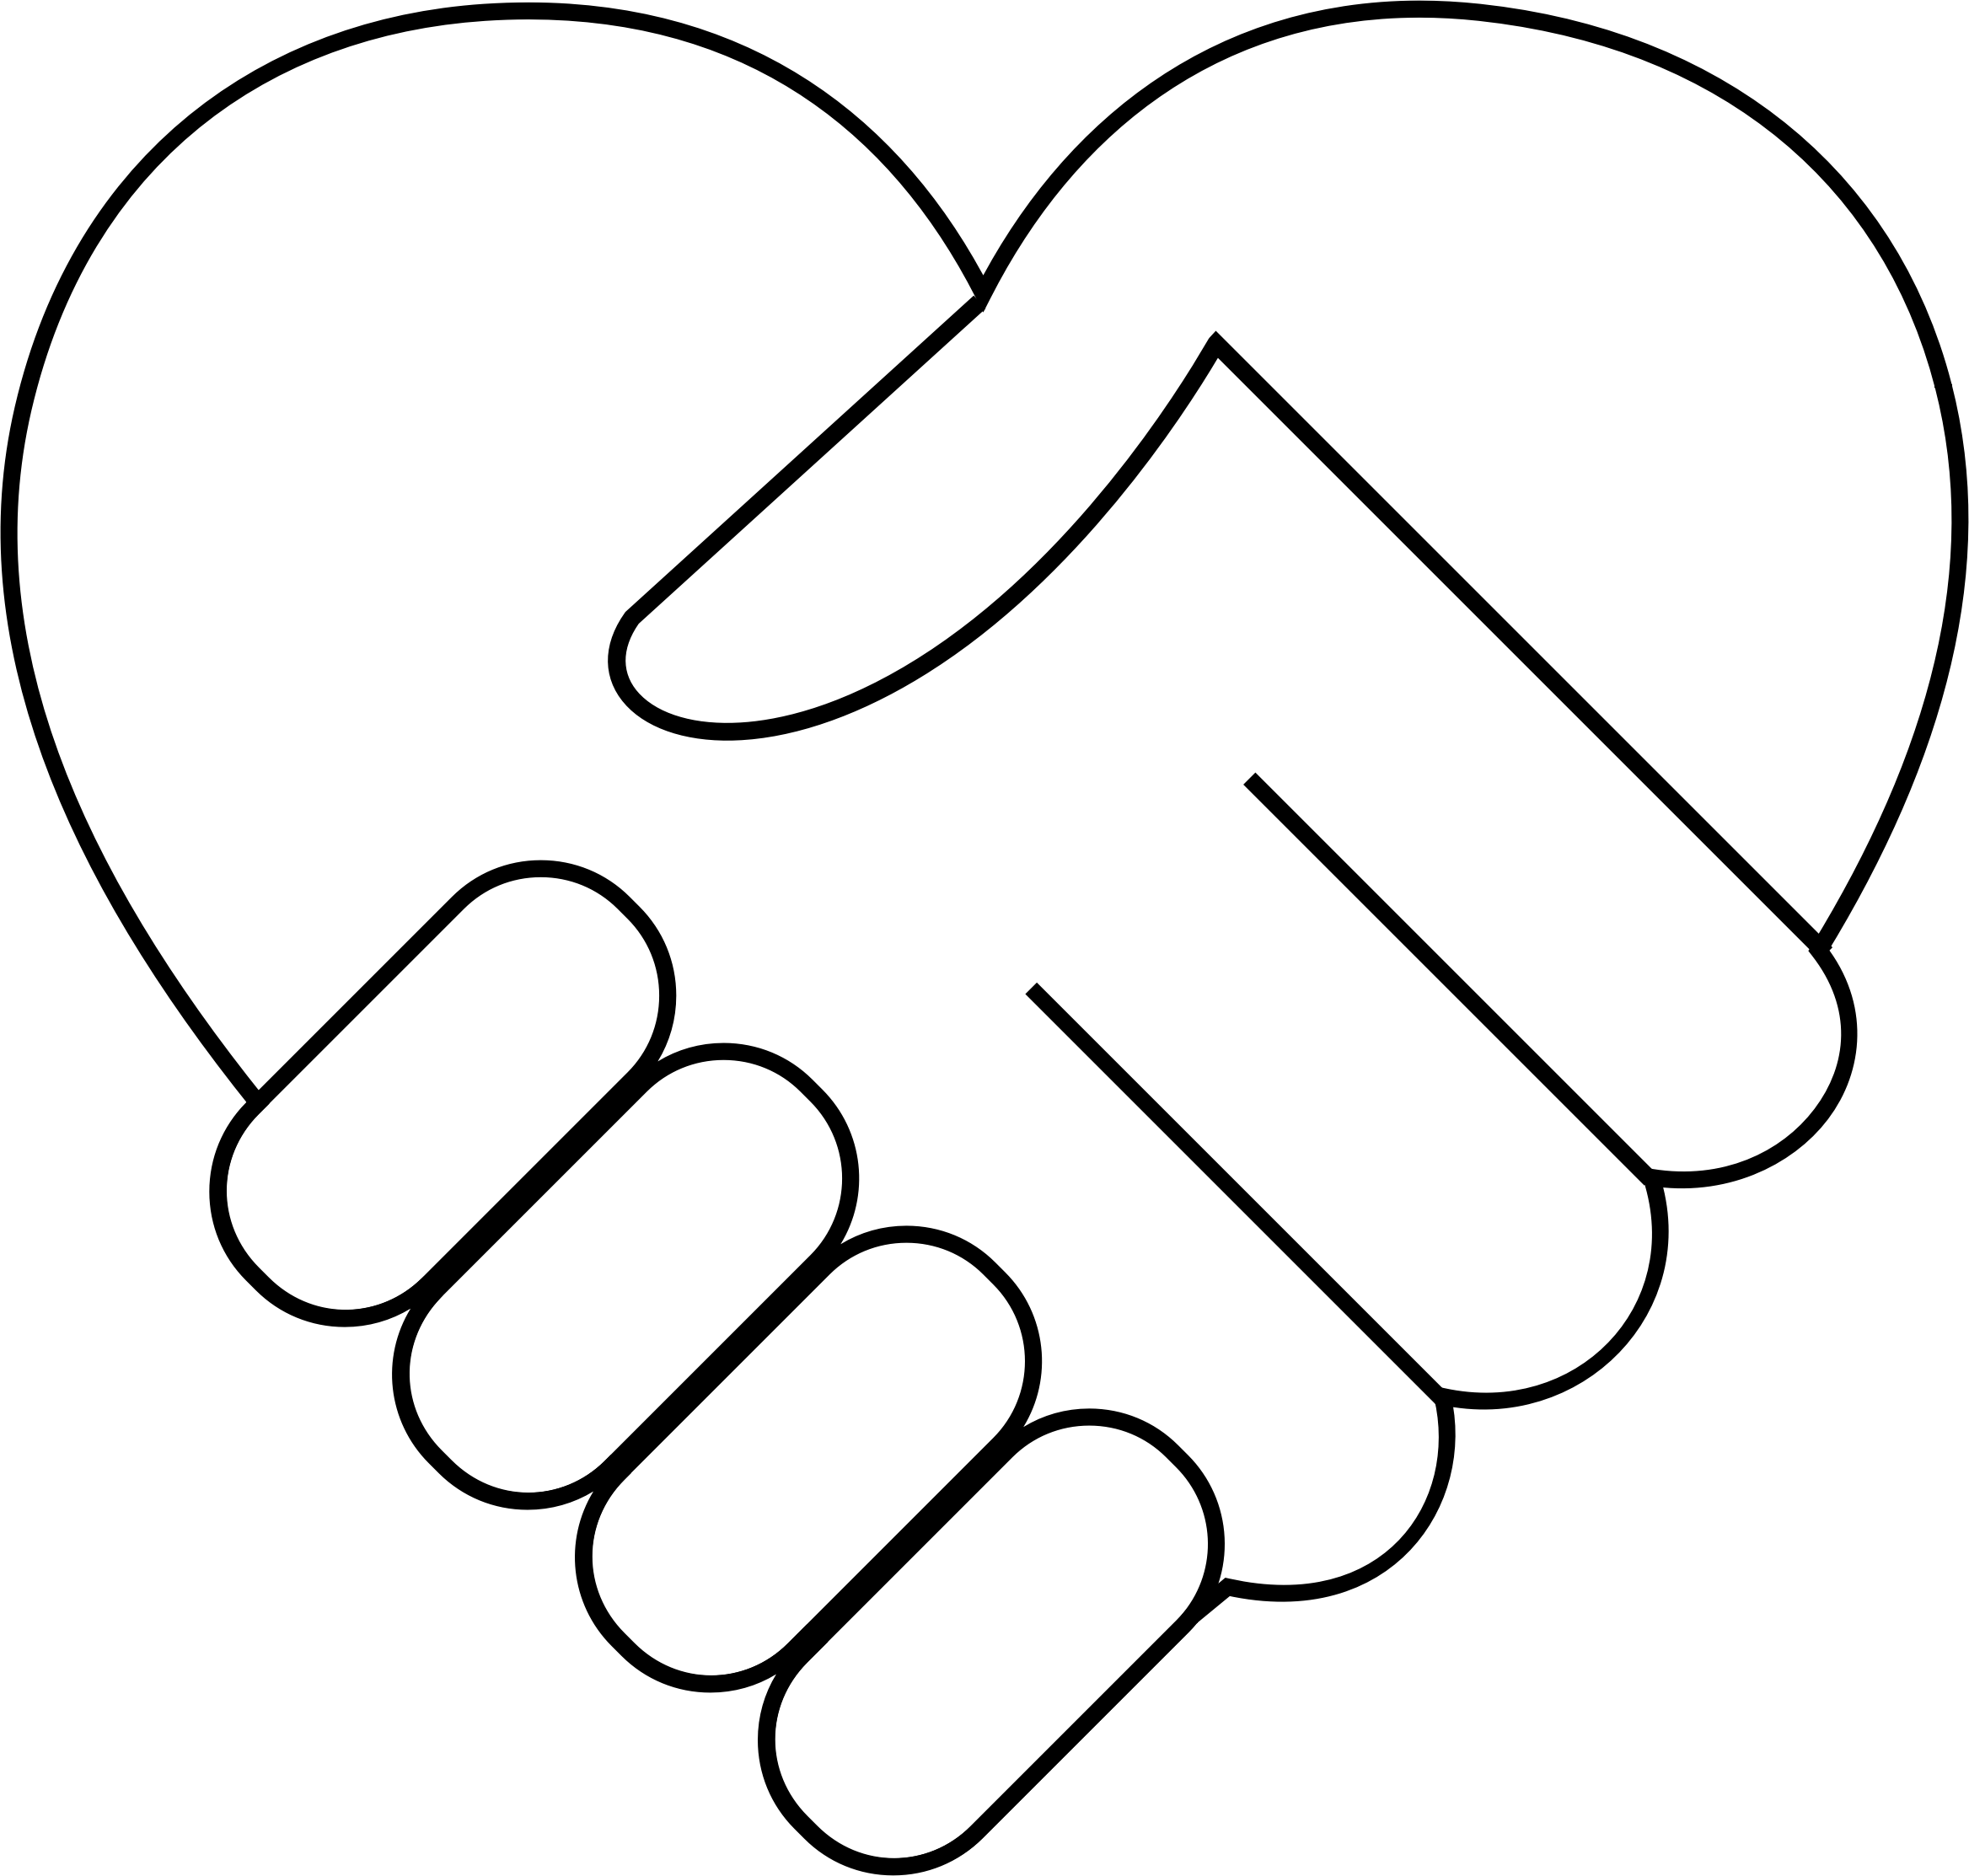 Fingers clipart peace, Fingers peace Transparent FREE for